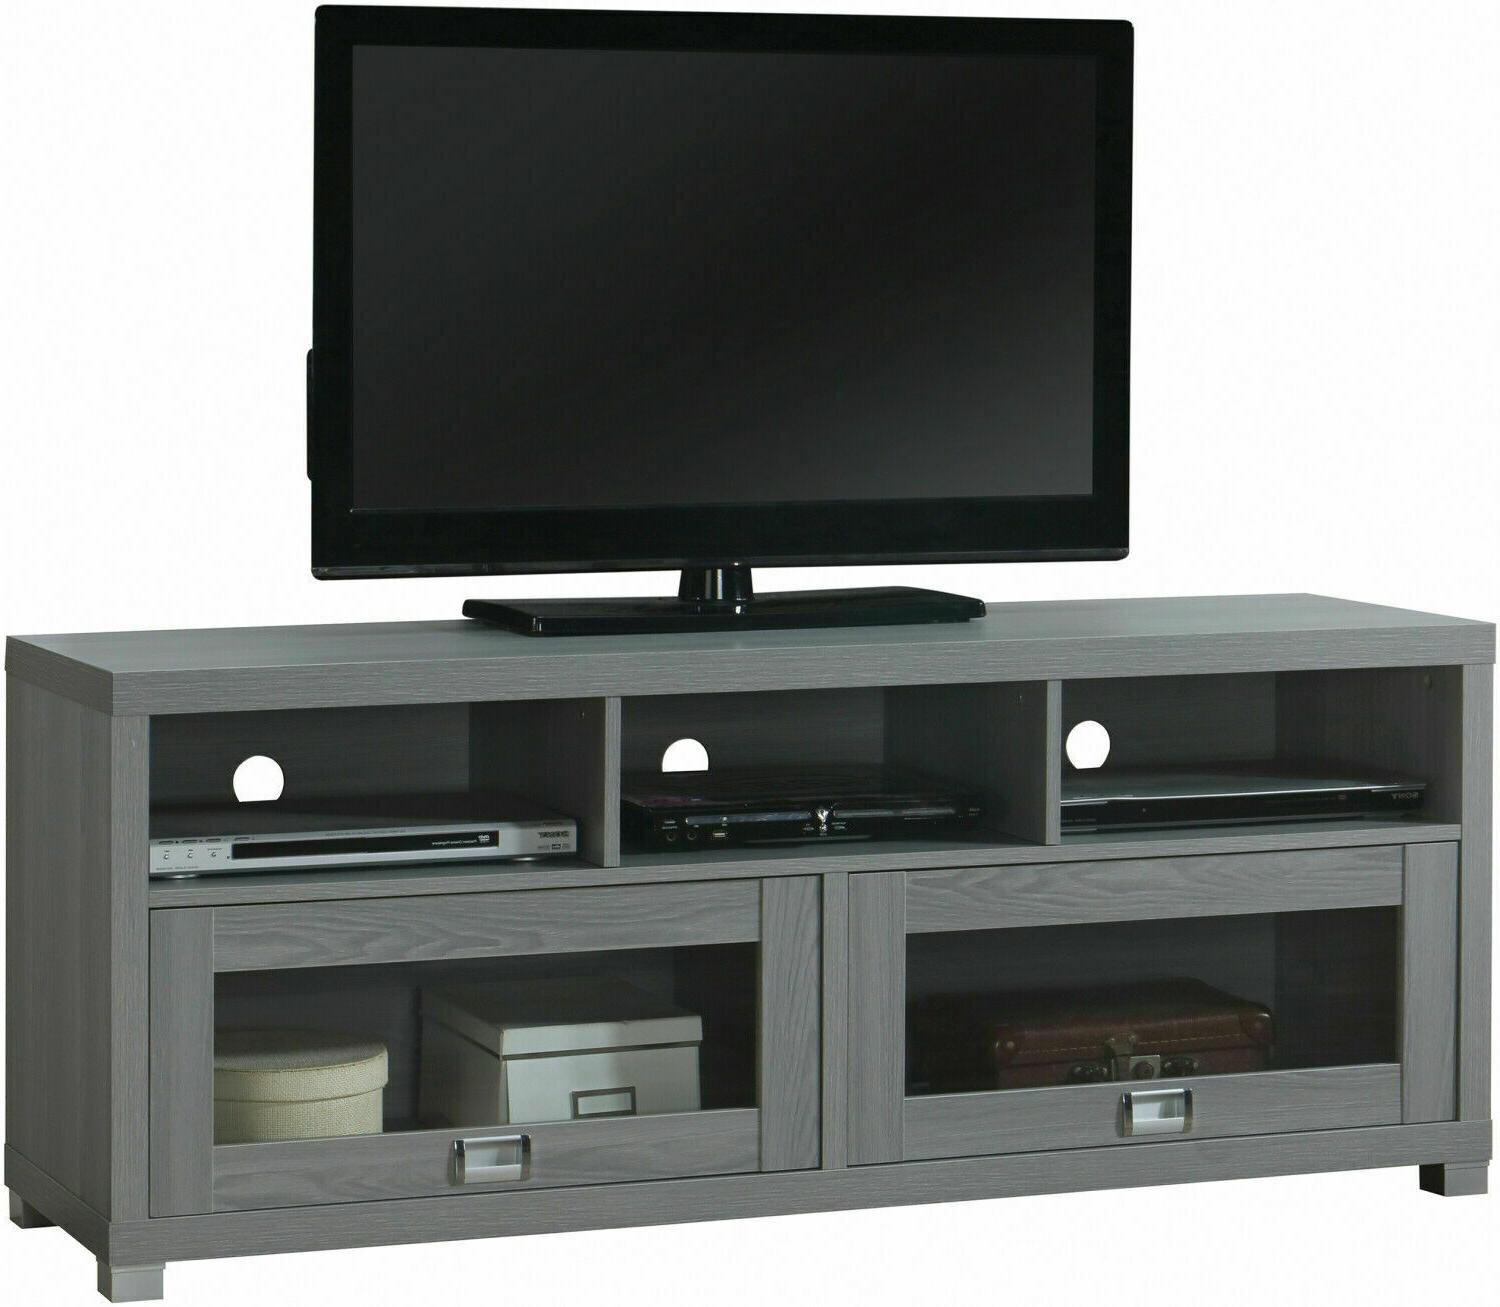 Flat Screen TV Stand up 50 70 55in